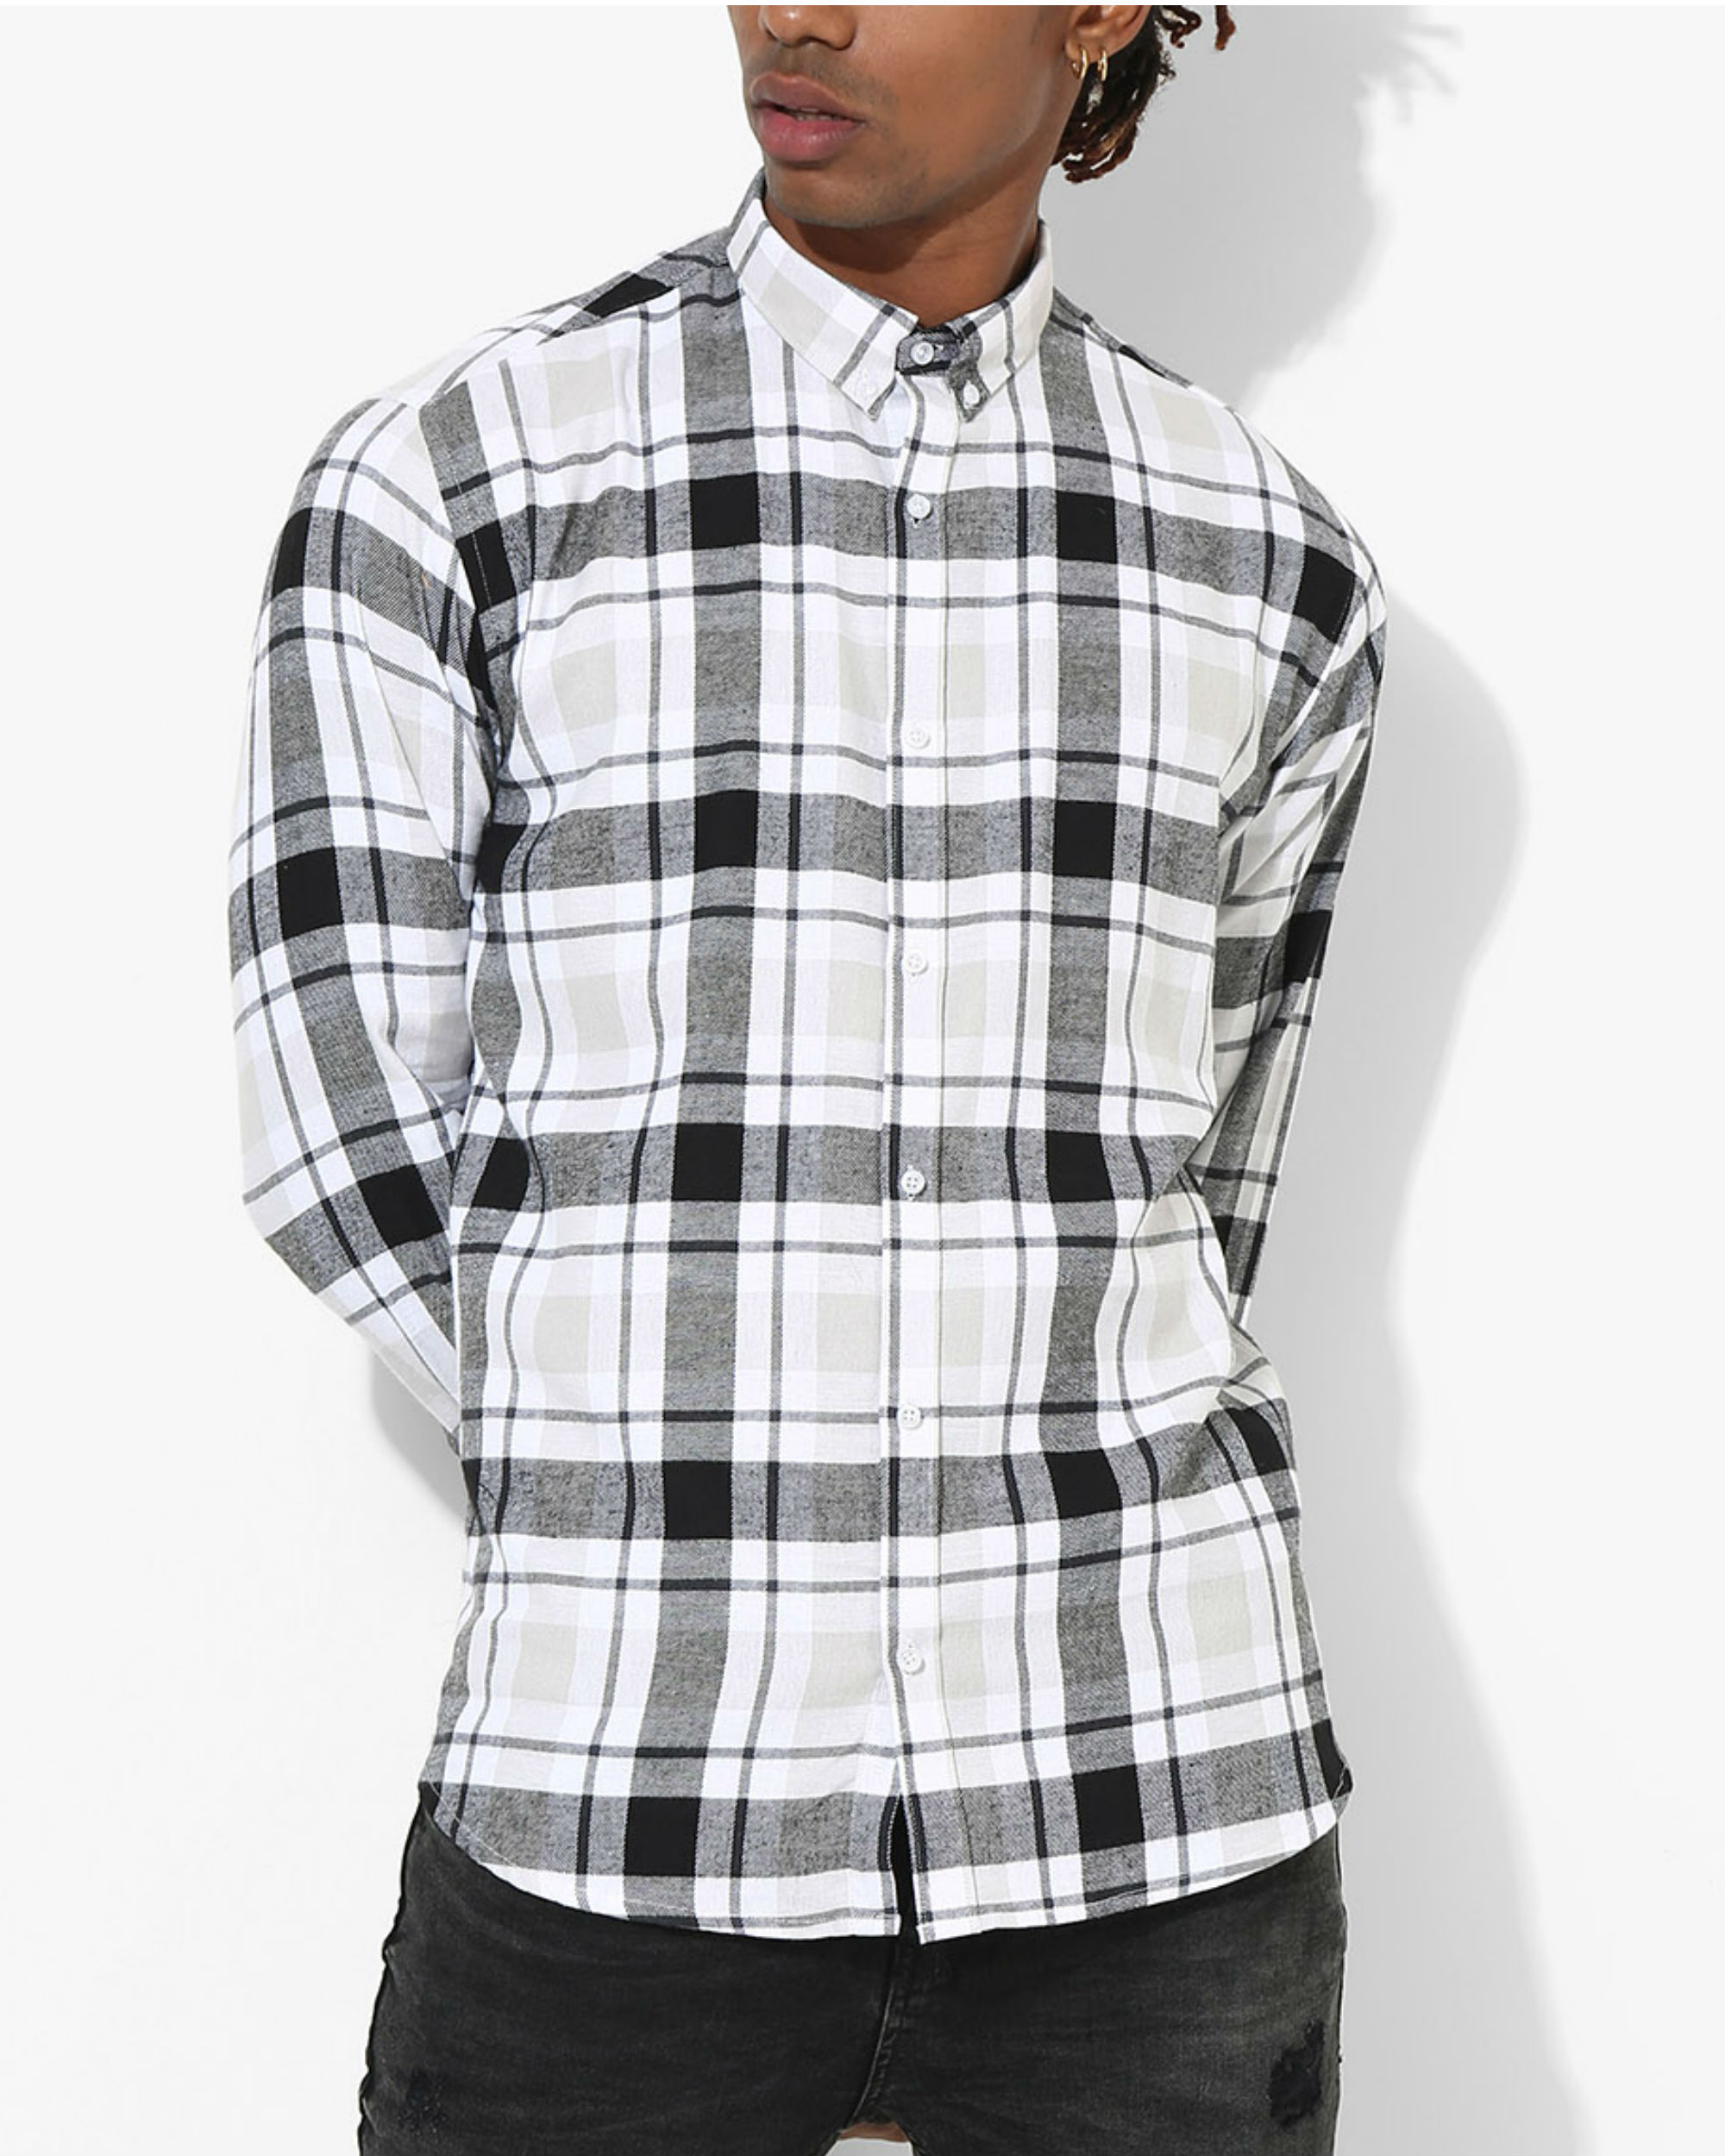 Tartan Checks White & Black Shirt